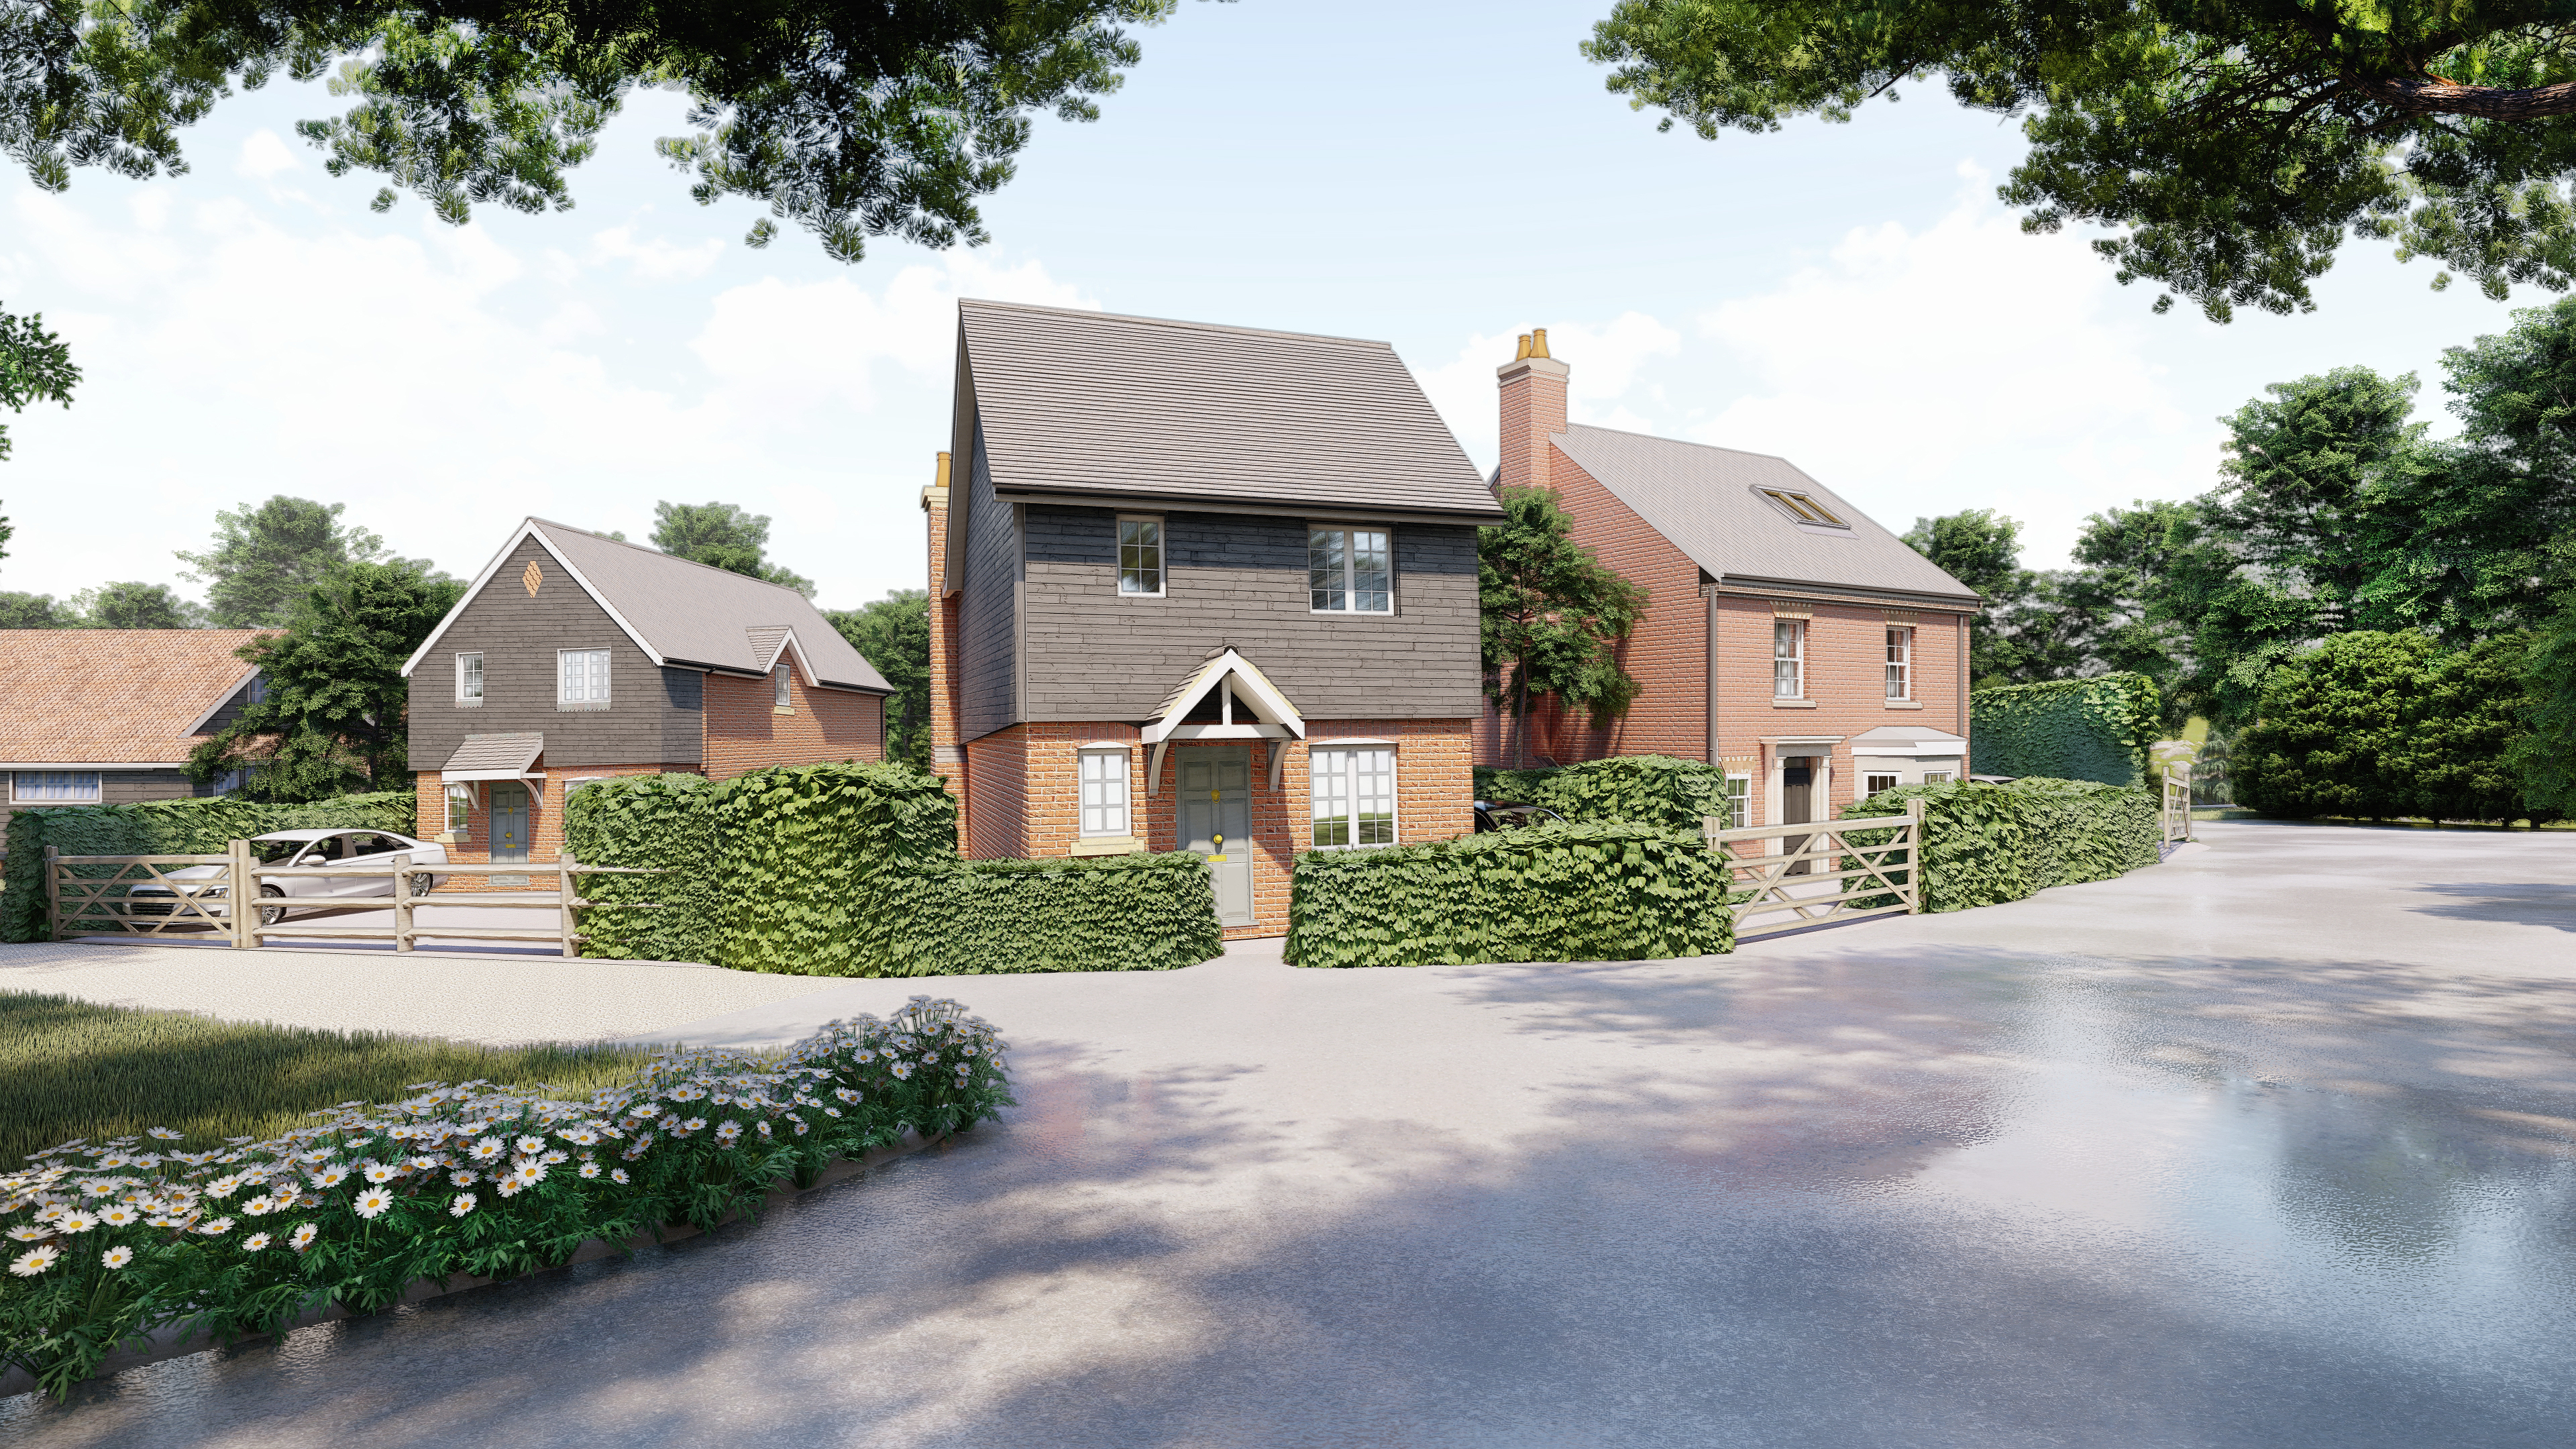 Exterior Image 3 - Land at Shamley Green